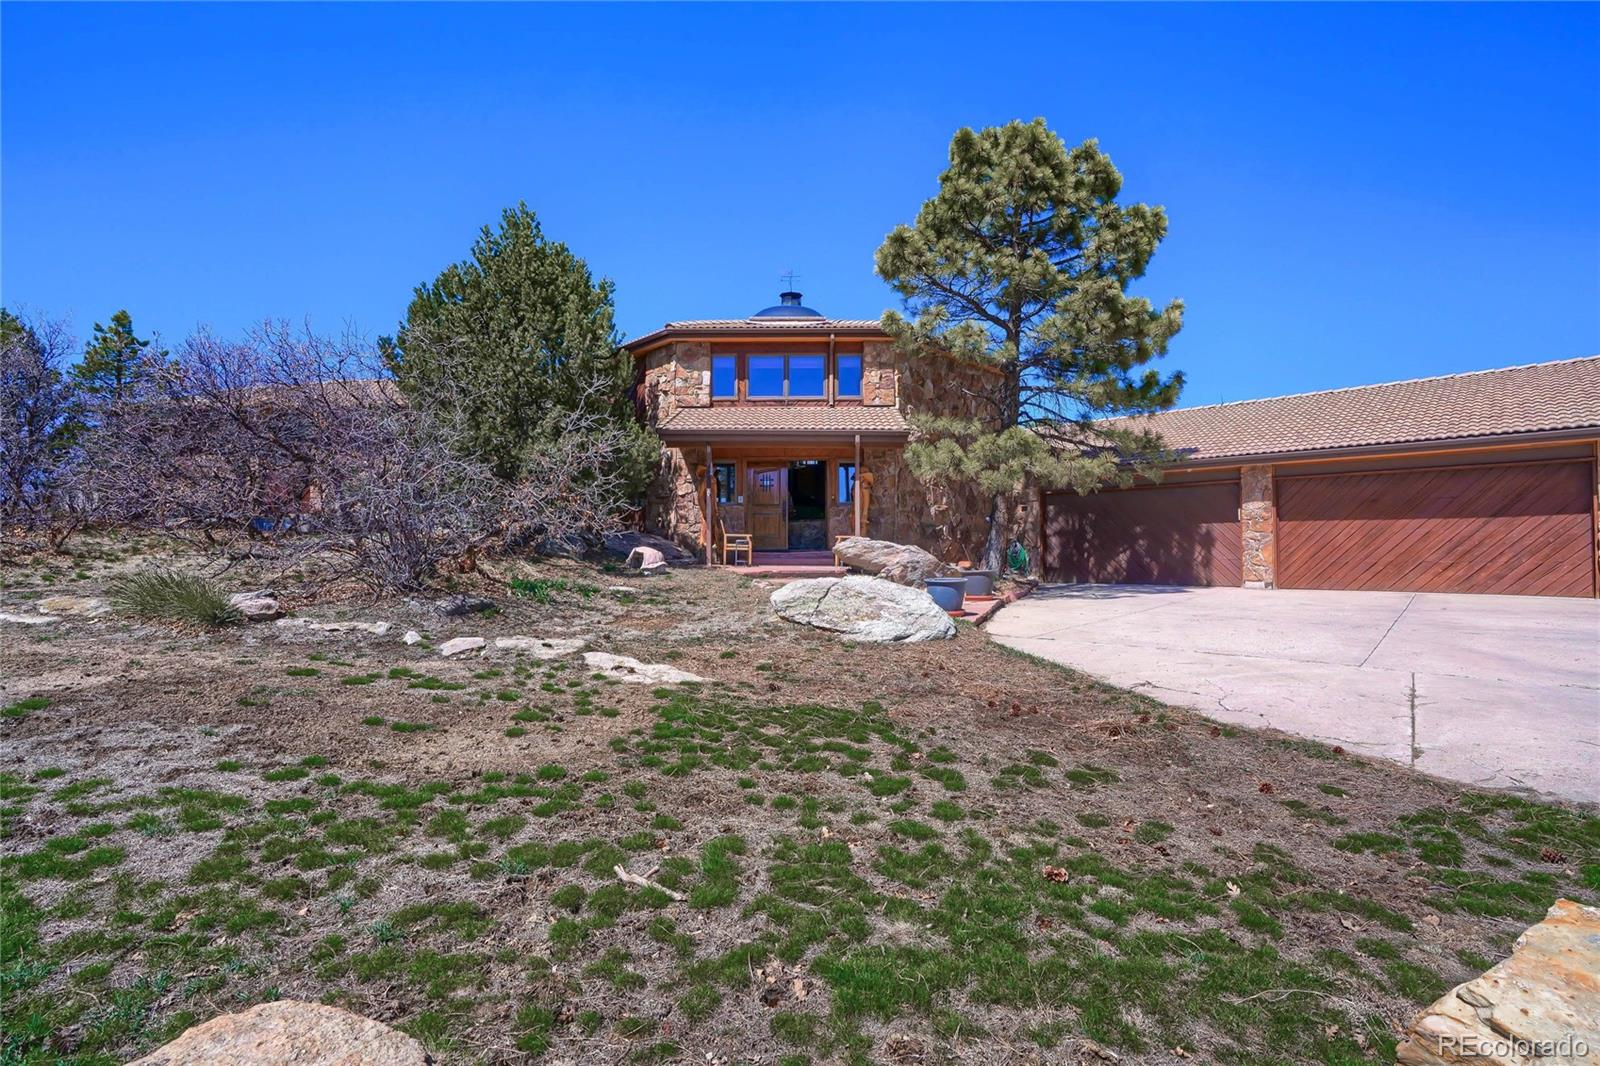 Stunning fully custom built home with separate guest house and barn sitting on just under 6 acres with amazing views of the front range and no one behind you to block your view!  This property has a country feel but is just minutes away from I-25 with easy access to Denver and Castle Rock.  Walk right in the main home and find yourself in the great room with over 20 foot tongue and groove wood walls and ceiling and solid wood beams! Find the library with amazing mountain views in the back right of the great room by walking up the solid wood spiral staircase.  Recently remodeled, the kitchen features stainless steel Wolf appliances, beautiful granite countertops with kitchen island and breakfast bar seating, heated tile flooring and an amazing built in garden feature!  The master bedroom is situated perfectly to take full advantage of the front range views and has a door leading out to the hot tub on the back deck for evening soaking!  Master bathroom includes a granite countertop double vanity, walk-in live steam shower with live moss rock and dual shower heads!  Walk out to the spacious backyard and you will find a large three level deck.  The lower level is the largest with plenty of room for your outdoor furniture, take a few steps up to find the built-in hot tub where you can watch the sunset over the mountains or walk up to the top deck to really get a great 180 degree view of Denver down to Castle Rock and everything in between.  Four car garage heated and insulated with a large workshop attached.  The guest house is a 2 bed/2 bath one level home sitting on top of a 2400 sq ft heated barn area.  This home could easily be transformed into a 3 bed/3 bath home if needed as plumbing is already there for it.  Located high on a ridge in the perfect location to feel like you are away from the hustle and bustle of it all but yet just minutes away from everything Castle Rock and Lone Tree have to offer. Come take a look, you don't want to miss it.